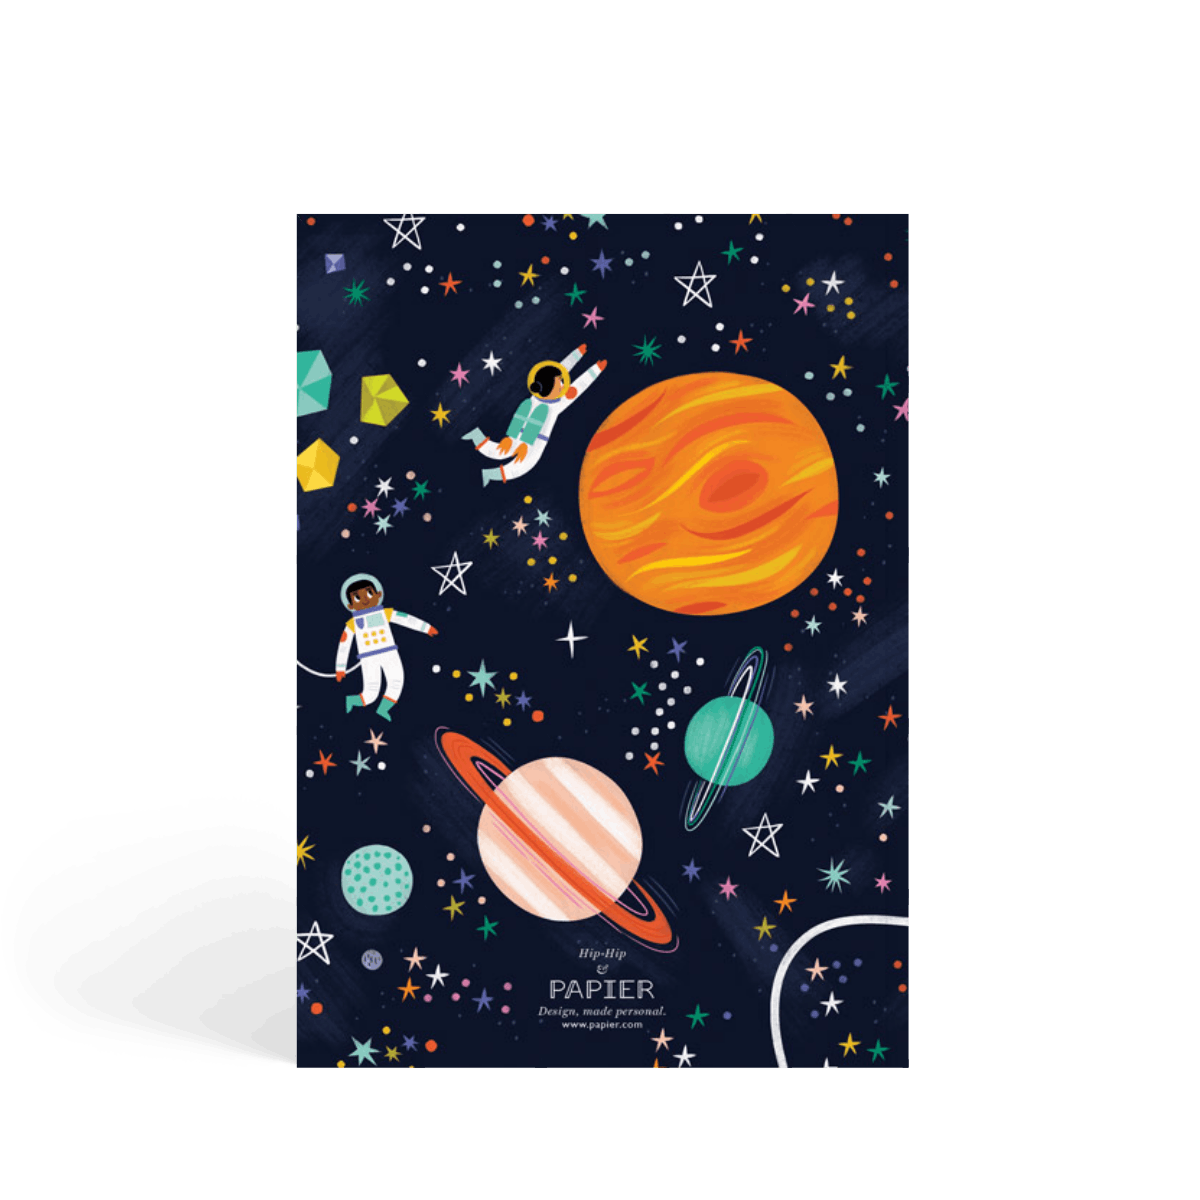 Https%3a%2f%2fwww.papier.com%2fproduct image%2f31629%2f5%2fastronaut girl iii 7945 back 1570134334.png?ixlib=rb 1.1